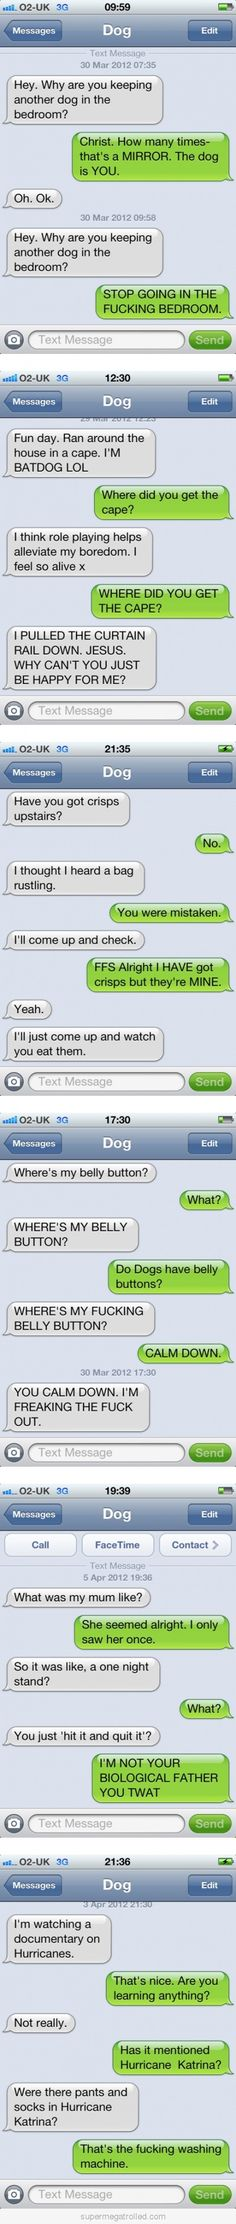 Messaging a dog.